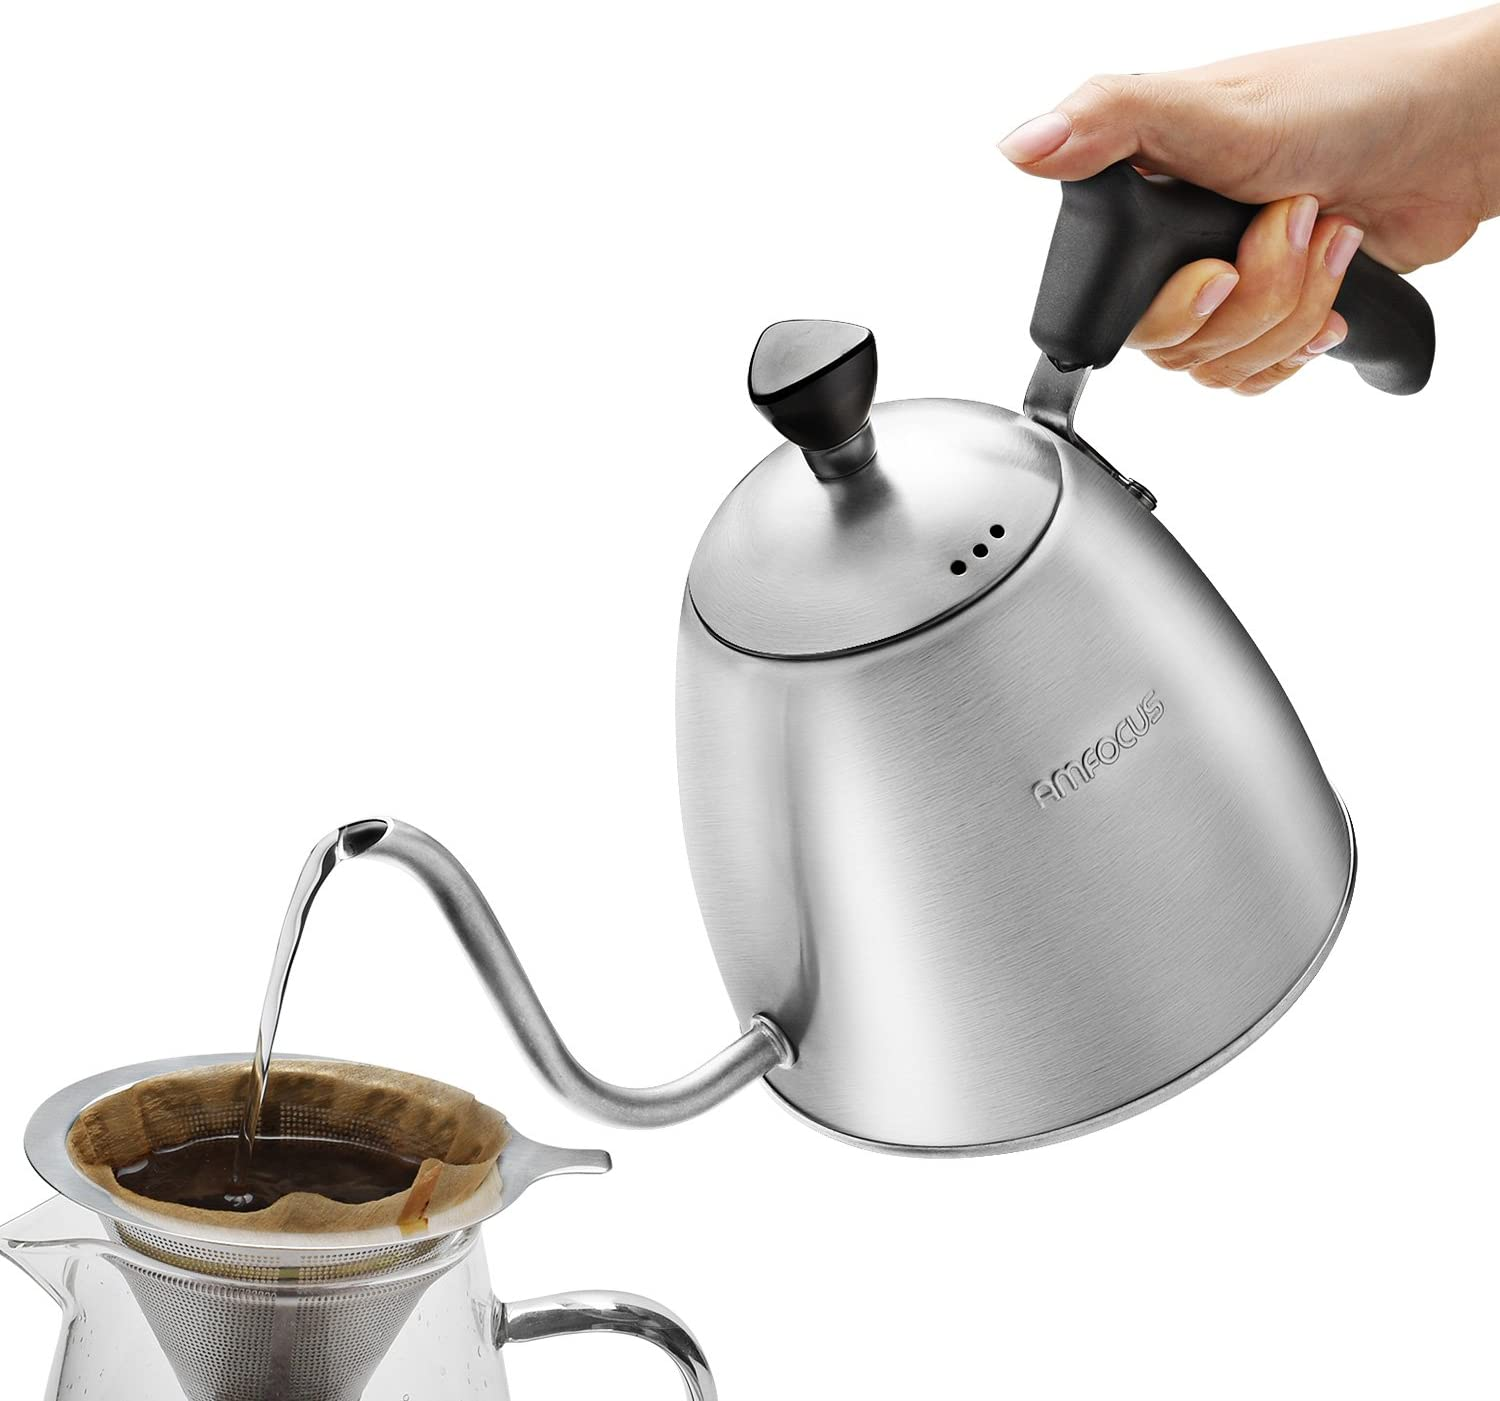 Gooseneck Kettle Tea Kettle Pour Over Kettle Pour Over Coffee Dripper, Teakettle Drip Pot with Stainless Steel Brewer and Paper Filters, 1.3L